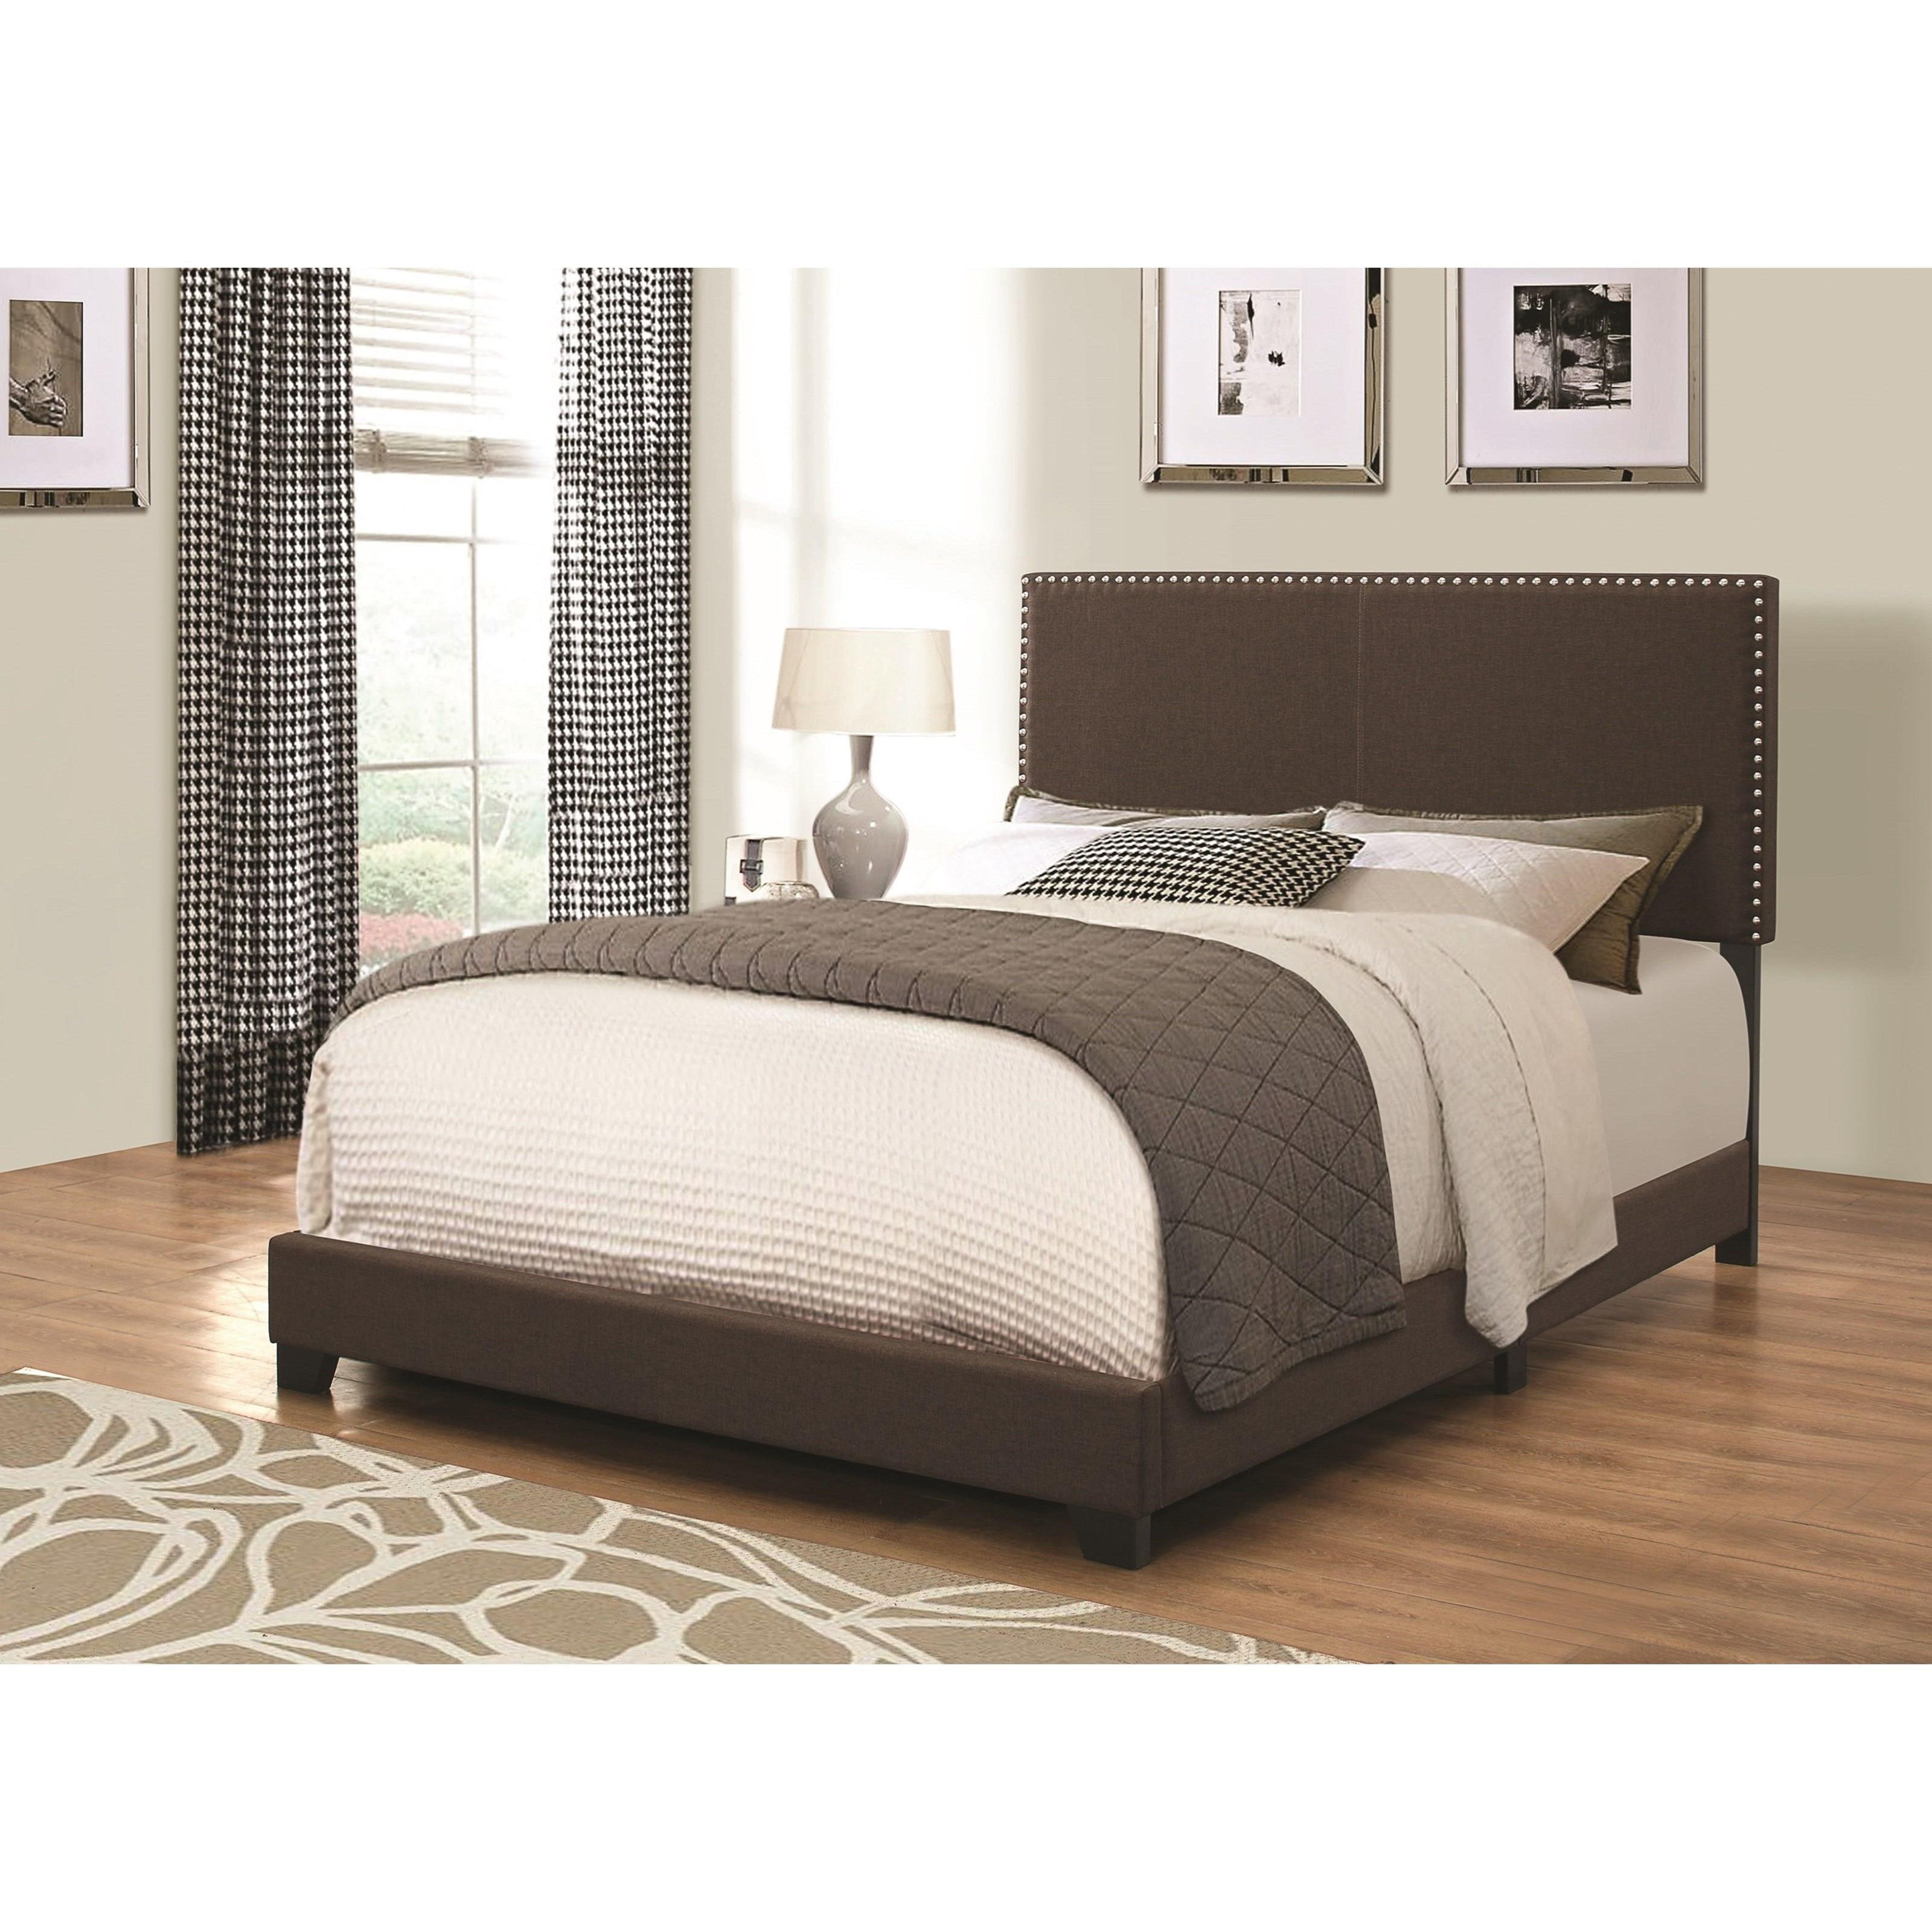 Coaster Upholstered Beds Twin Bed - Item Number: 350081T